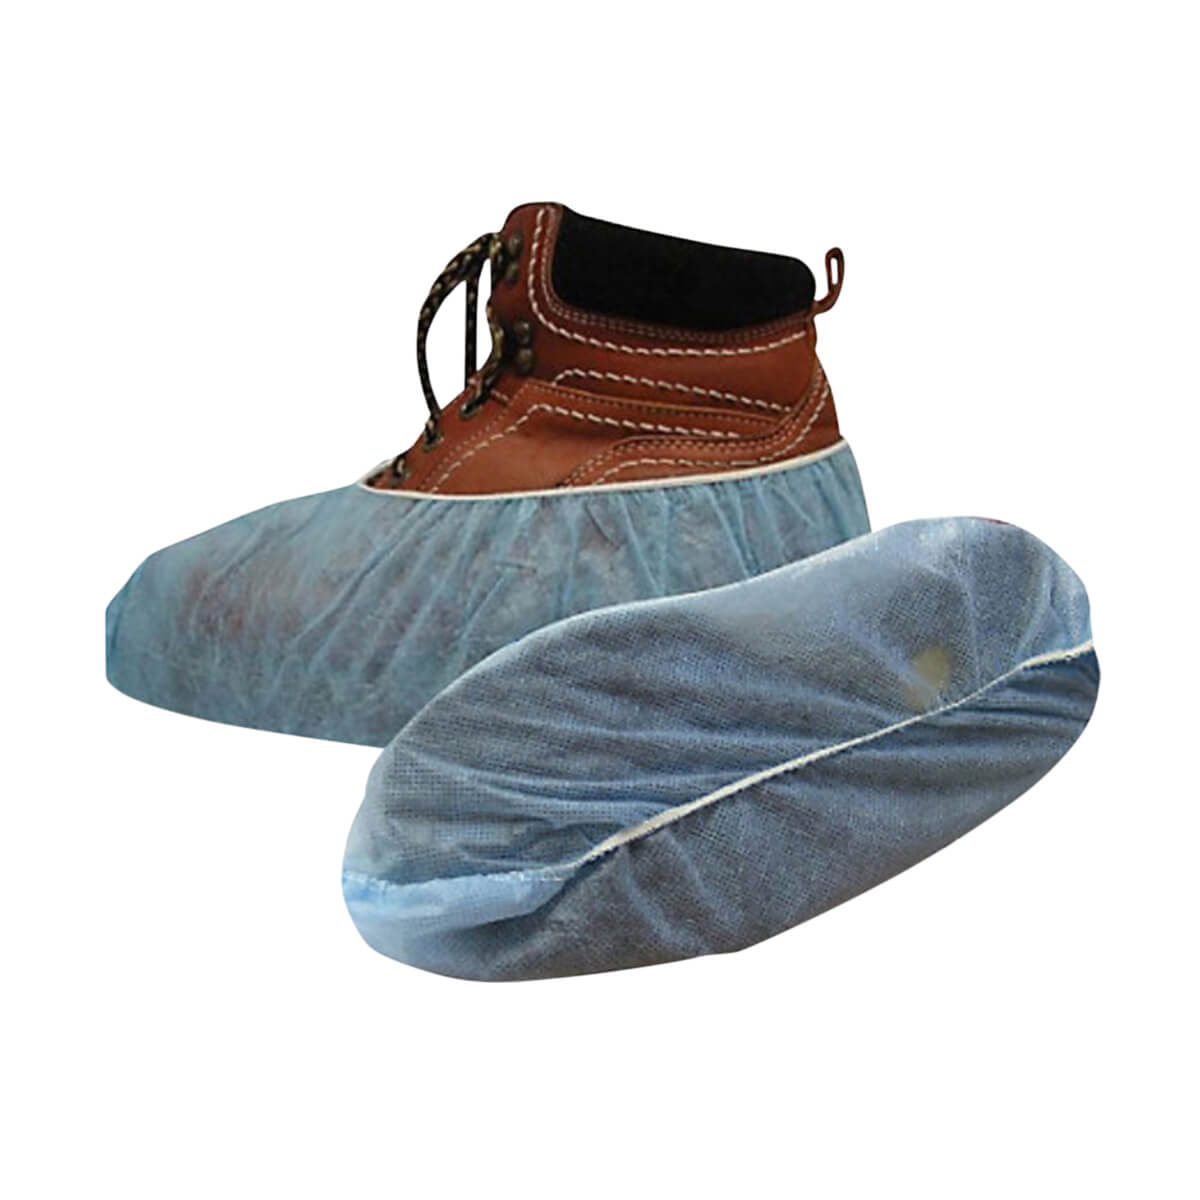 WorkHorseⓇ Disposable Shoe Covers (3-Pack)